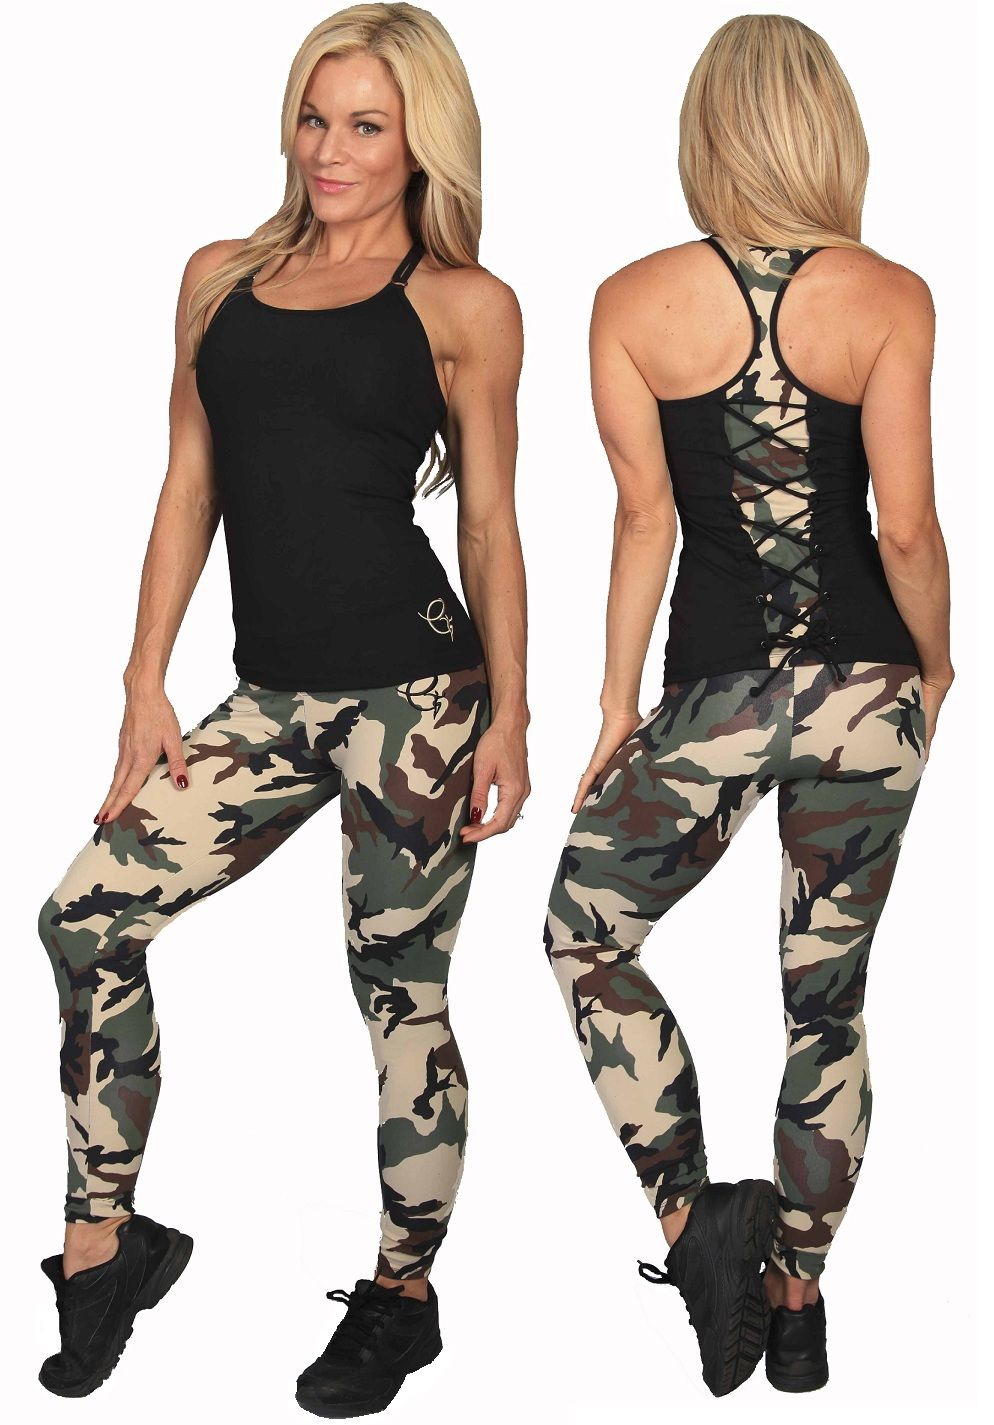 Army print sort wear Gym clothes women, Camo outfits